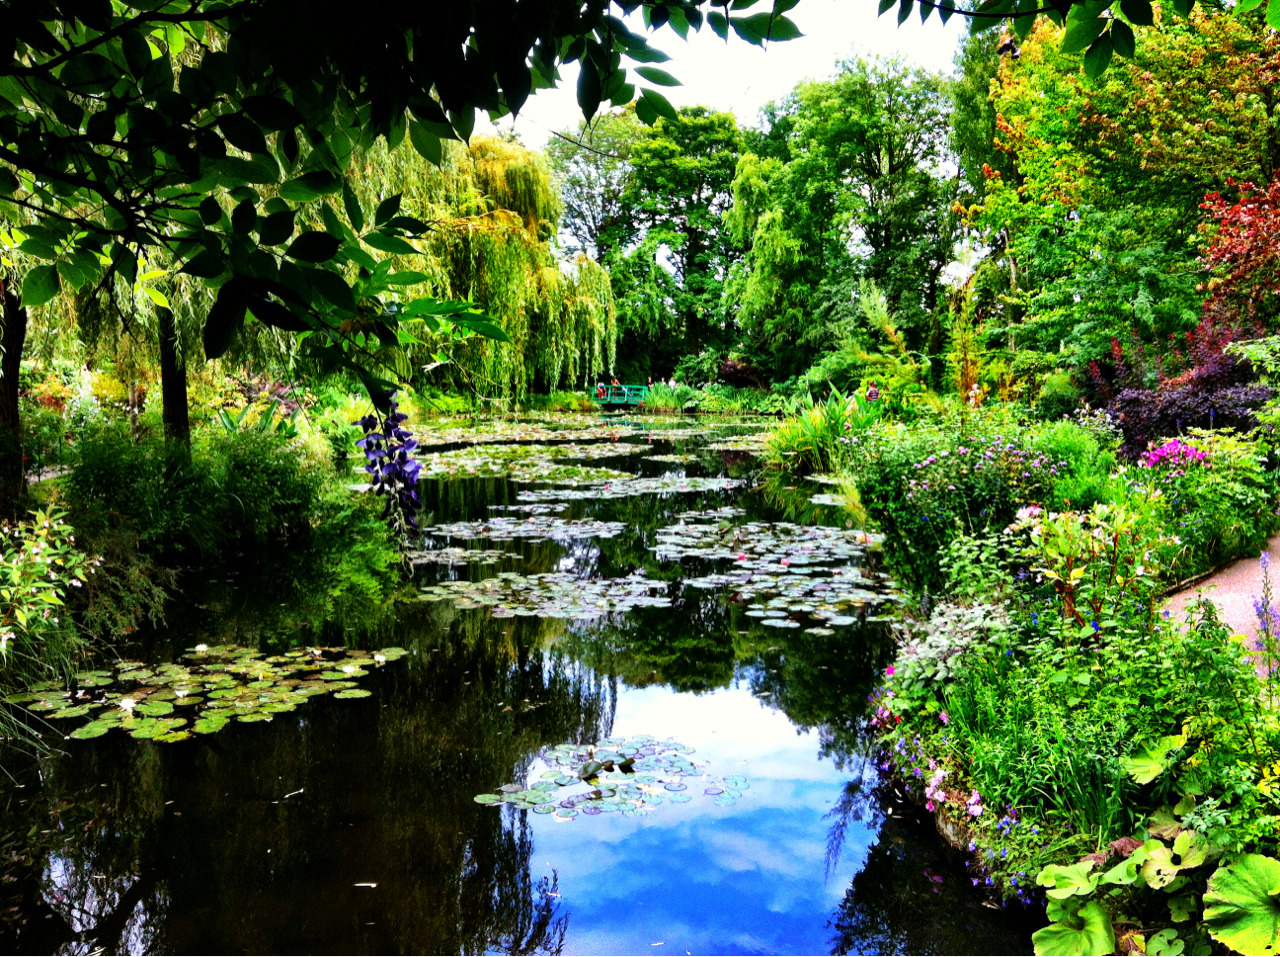 Almost doesn't seem real, no?  Claude Monet's garden; Giverny, France